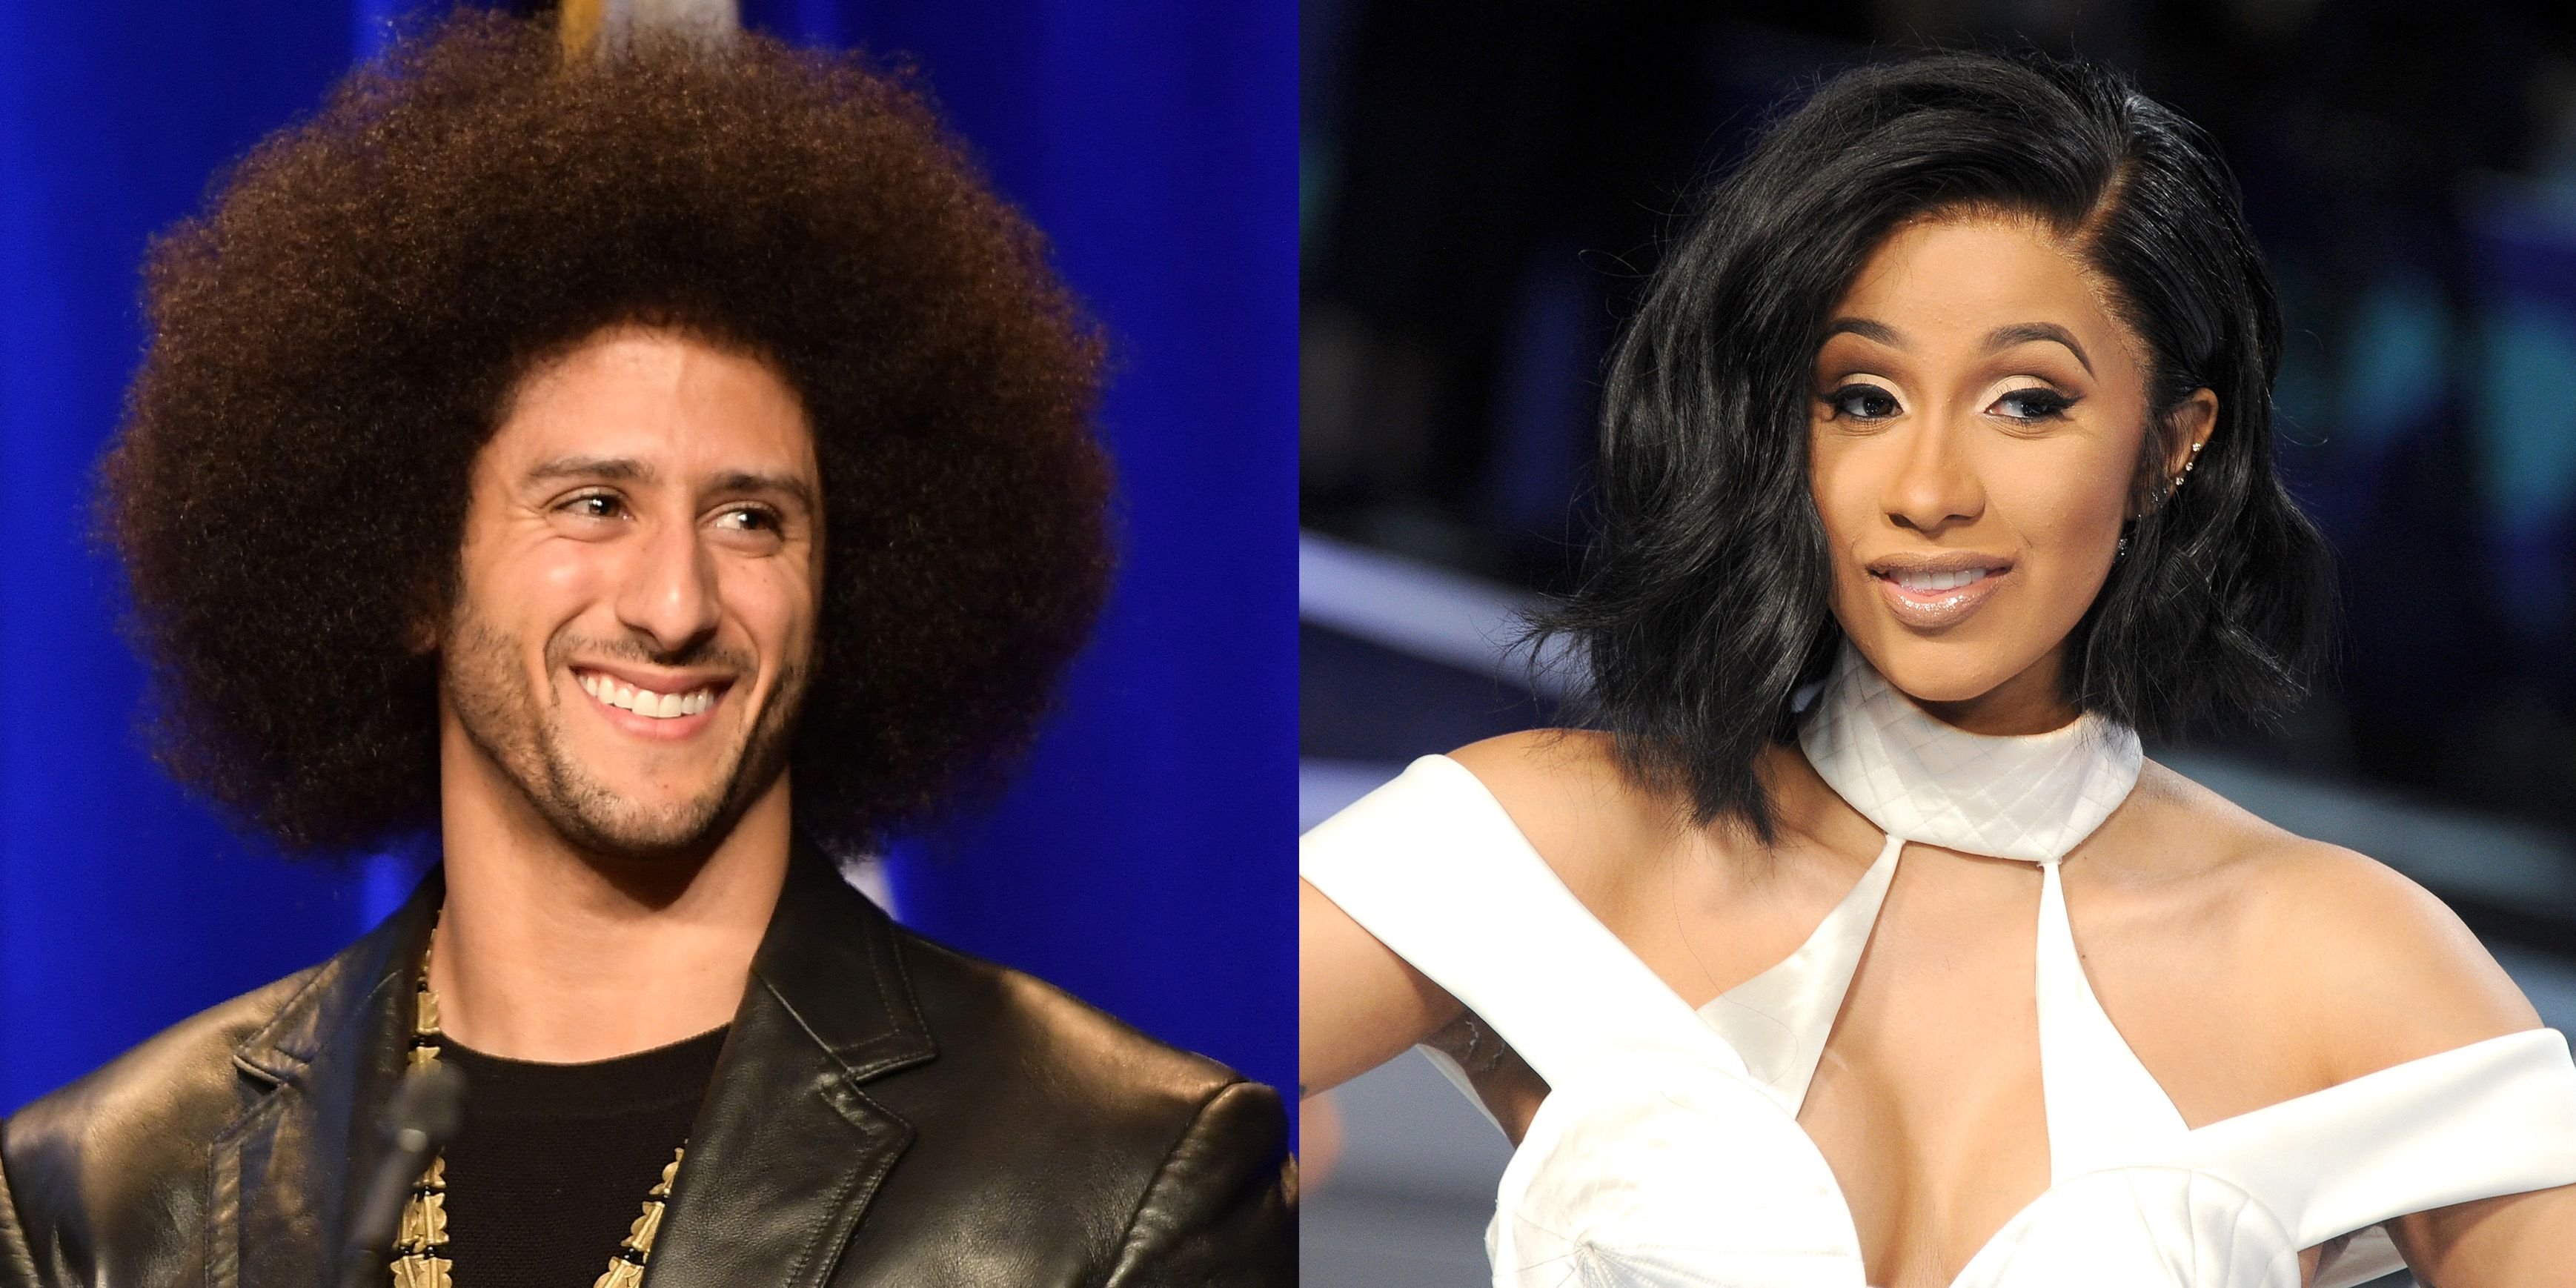 Cardi B has said she would not perform at Super Bowl show unless Colin Kaepernick is hired